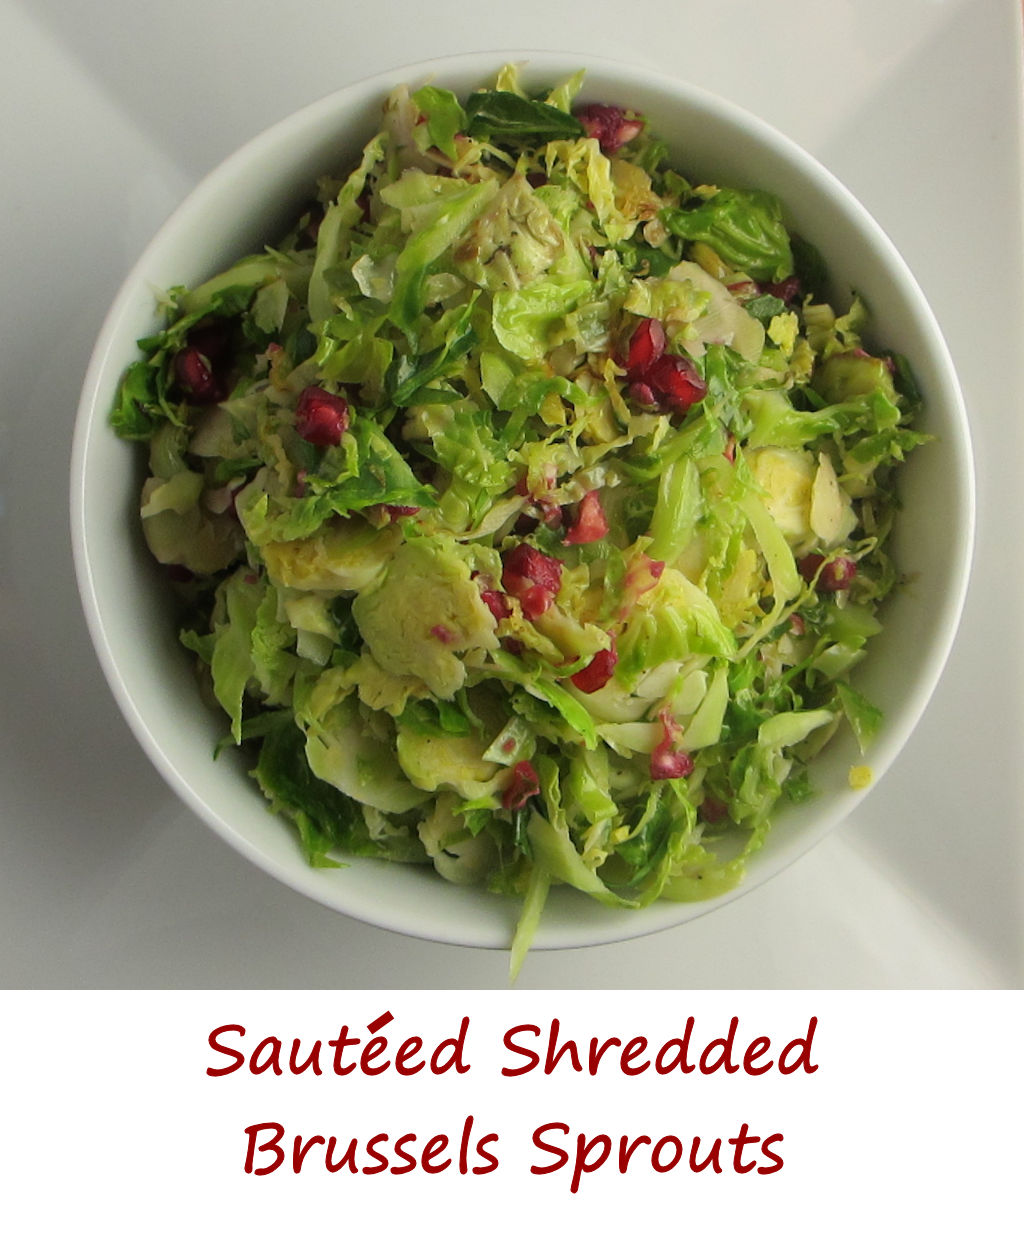 Sauteed shredded brussels sprouts life 39 s a tomatolife 39 s for Shredded brussel sprout salad recipe